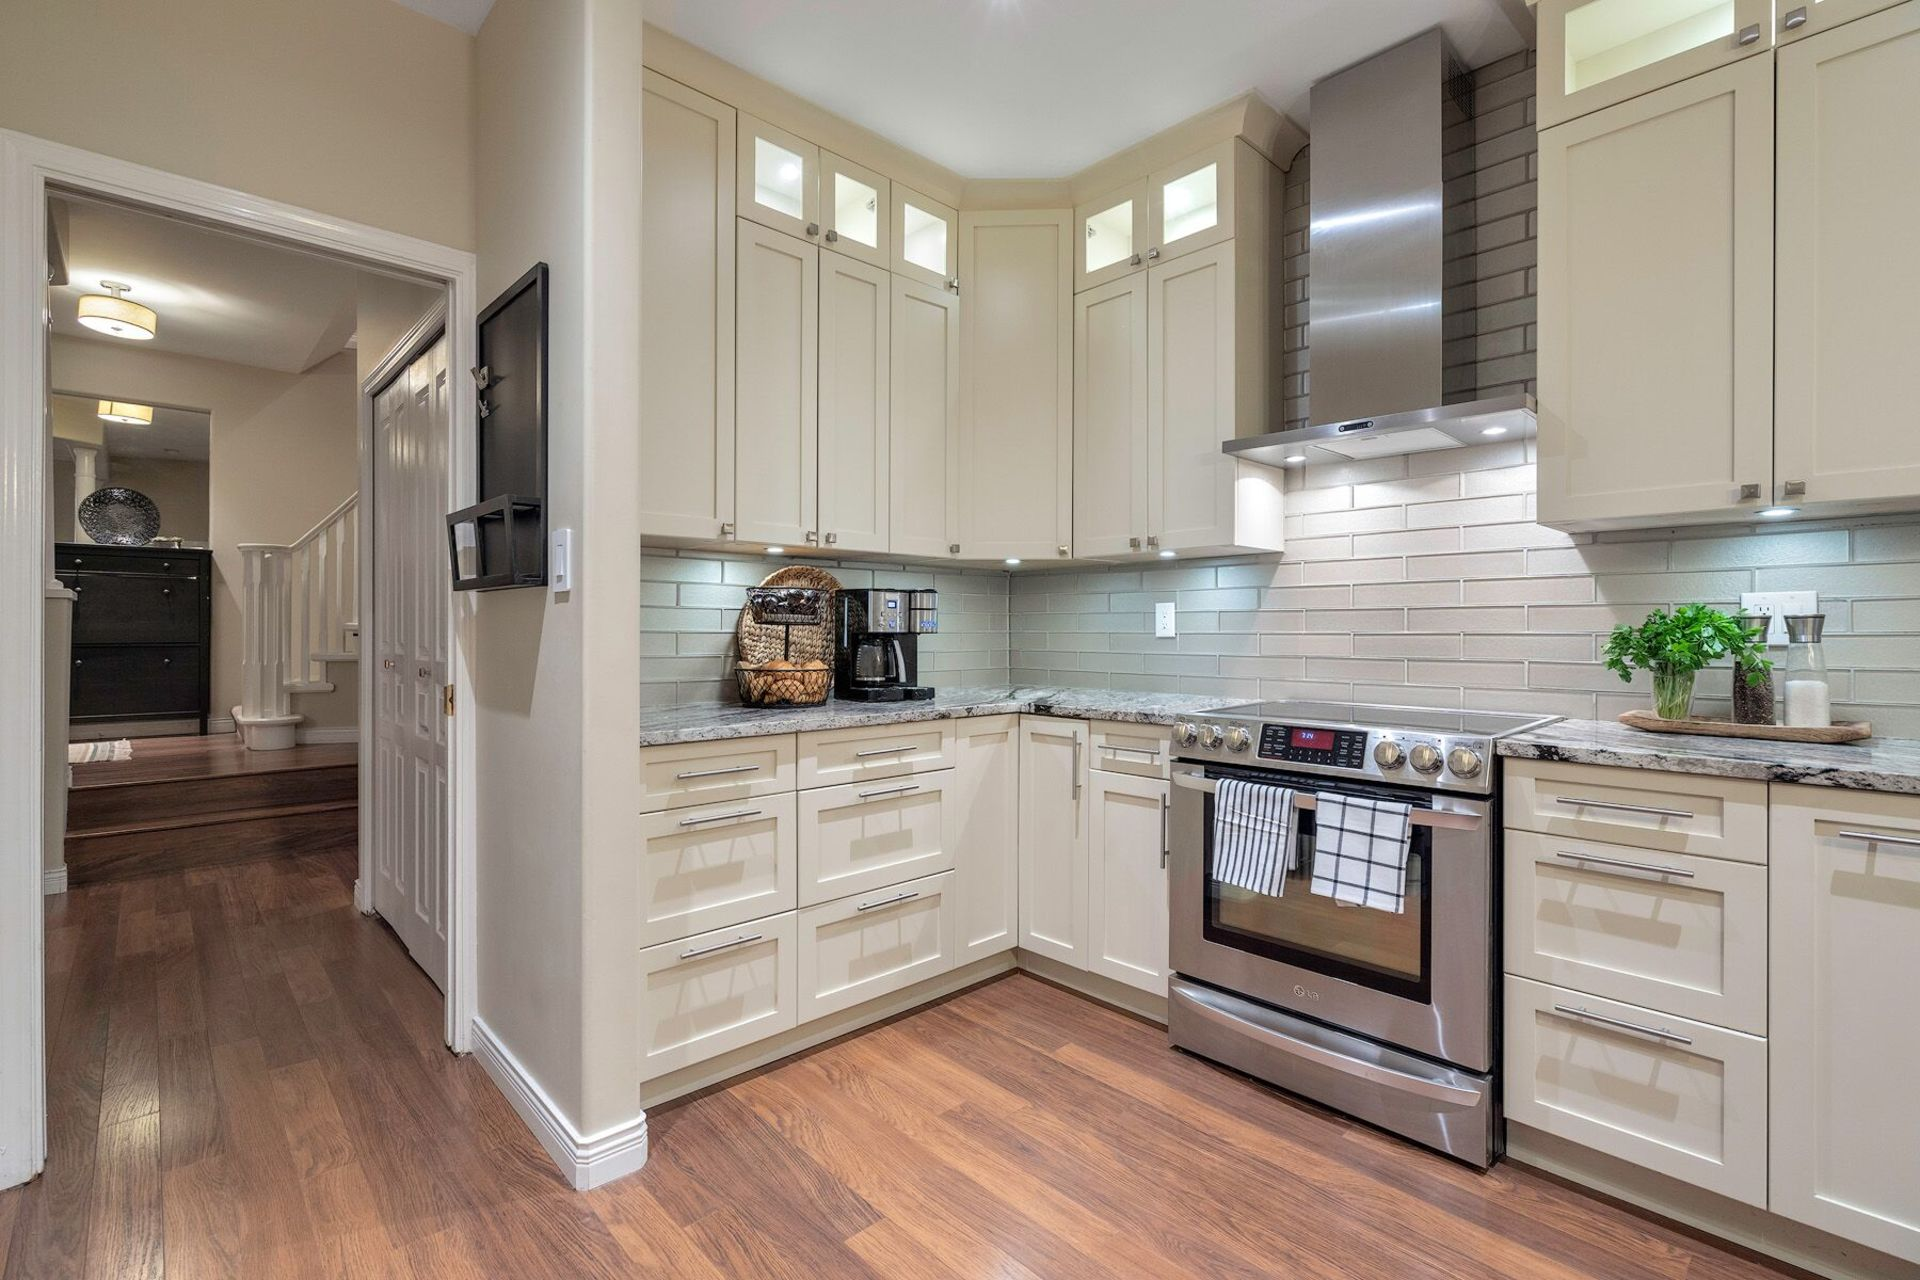 o9zp3y9w at 1 - 1 Aspenwood Drive, Heritage Woods PM, Port Moody